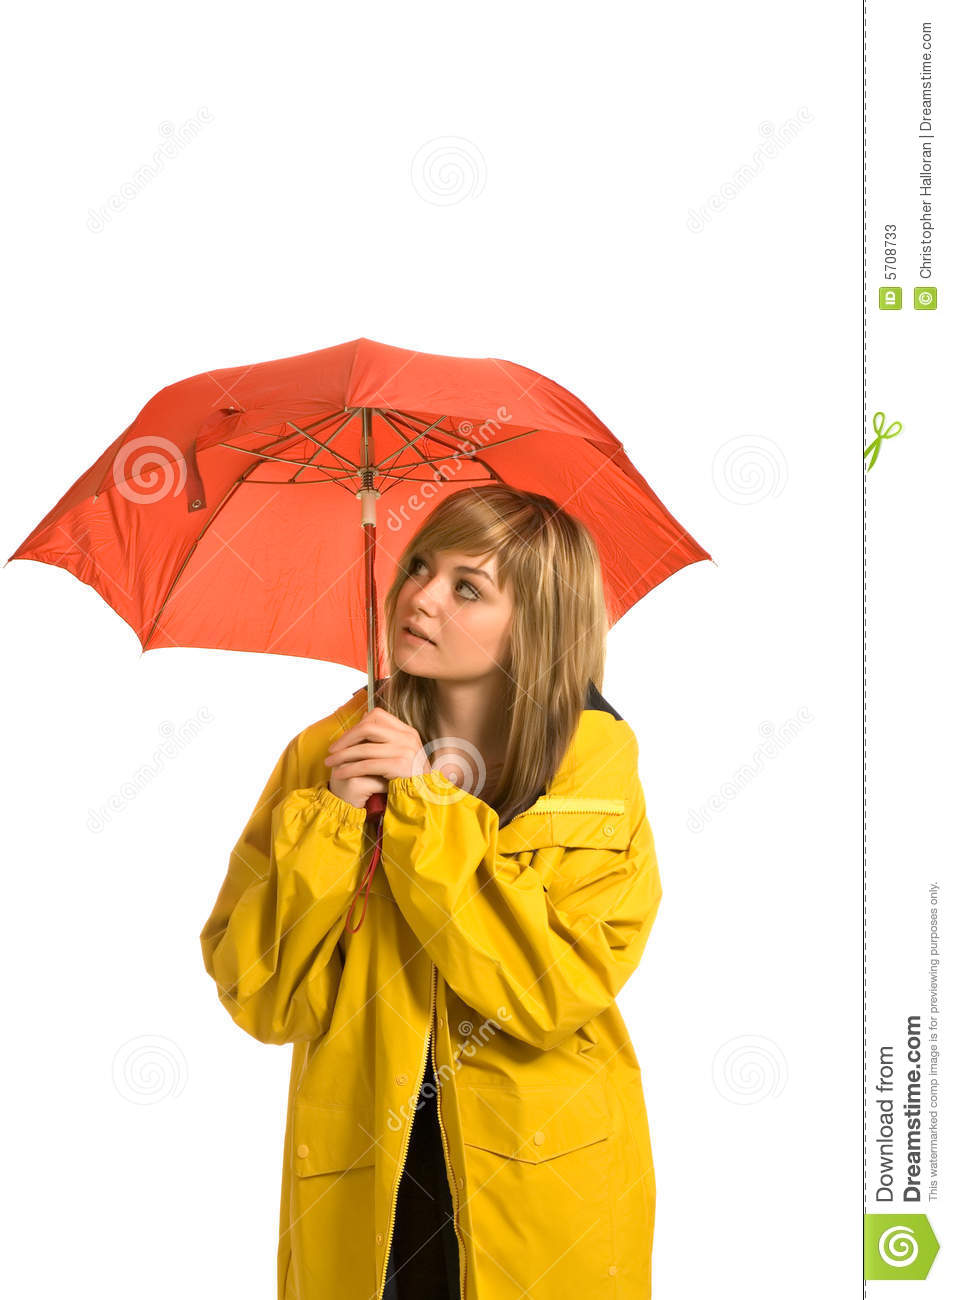 Pretty young woman in raincoat with umbrella